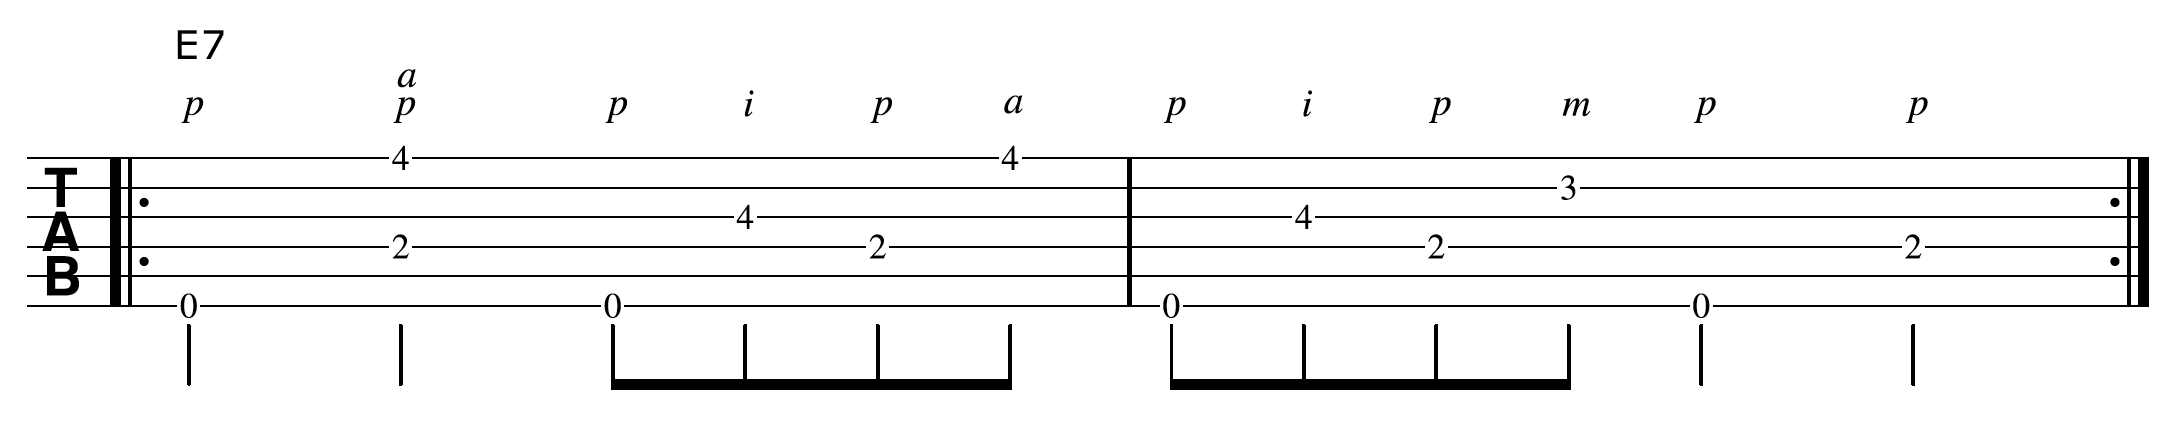 Guitar-Fingerpicking-Technique-Chord-Vamp